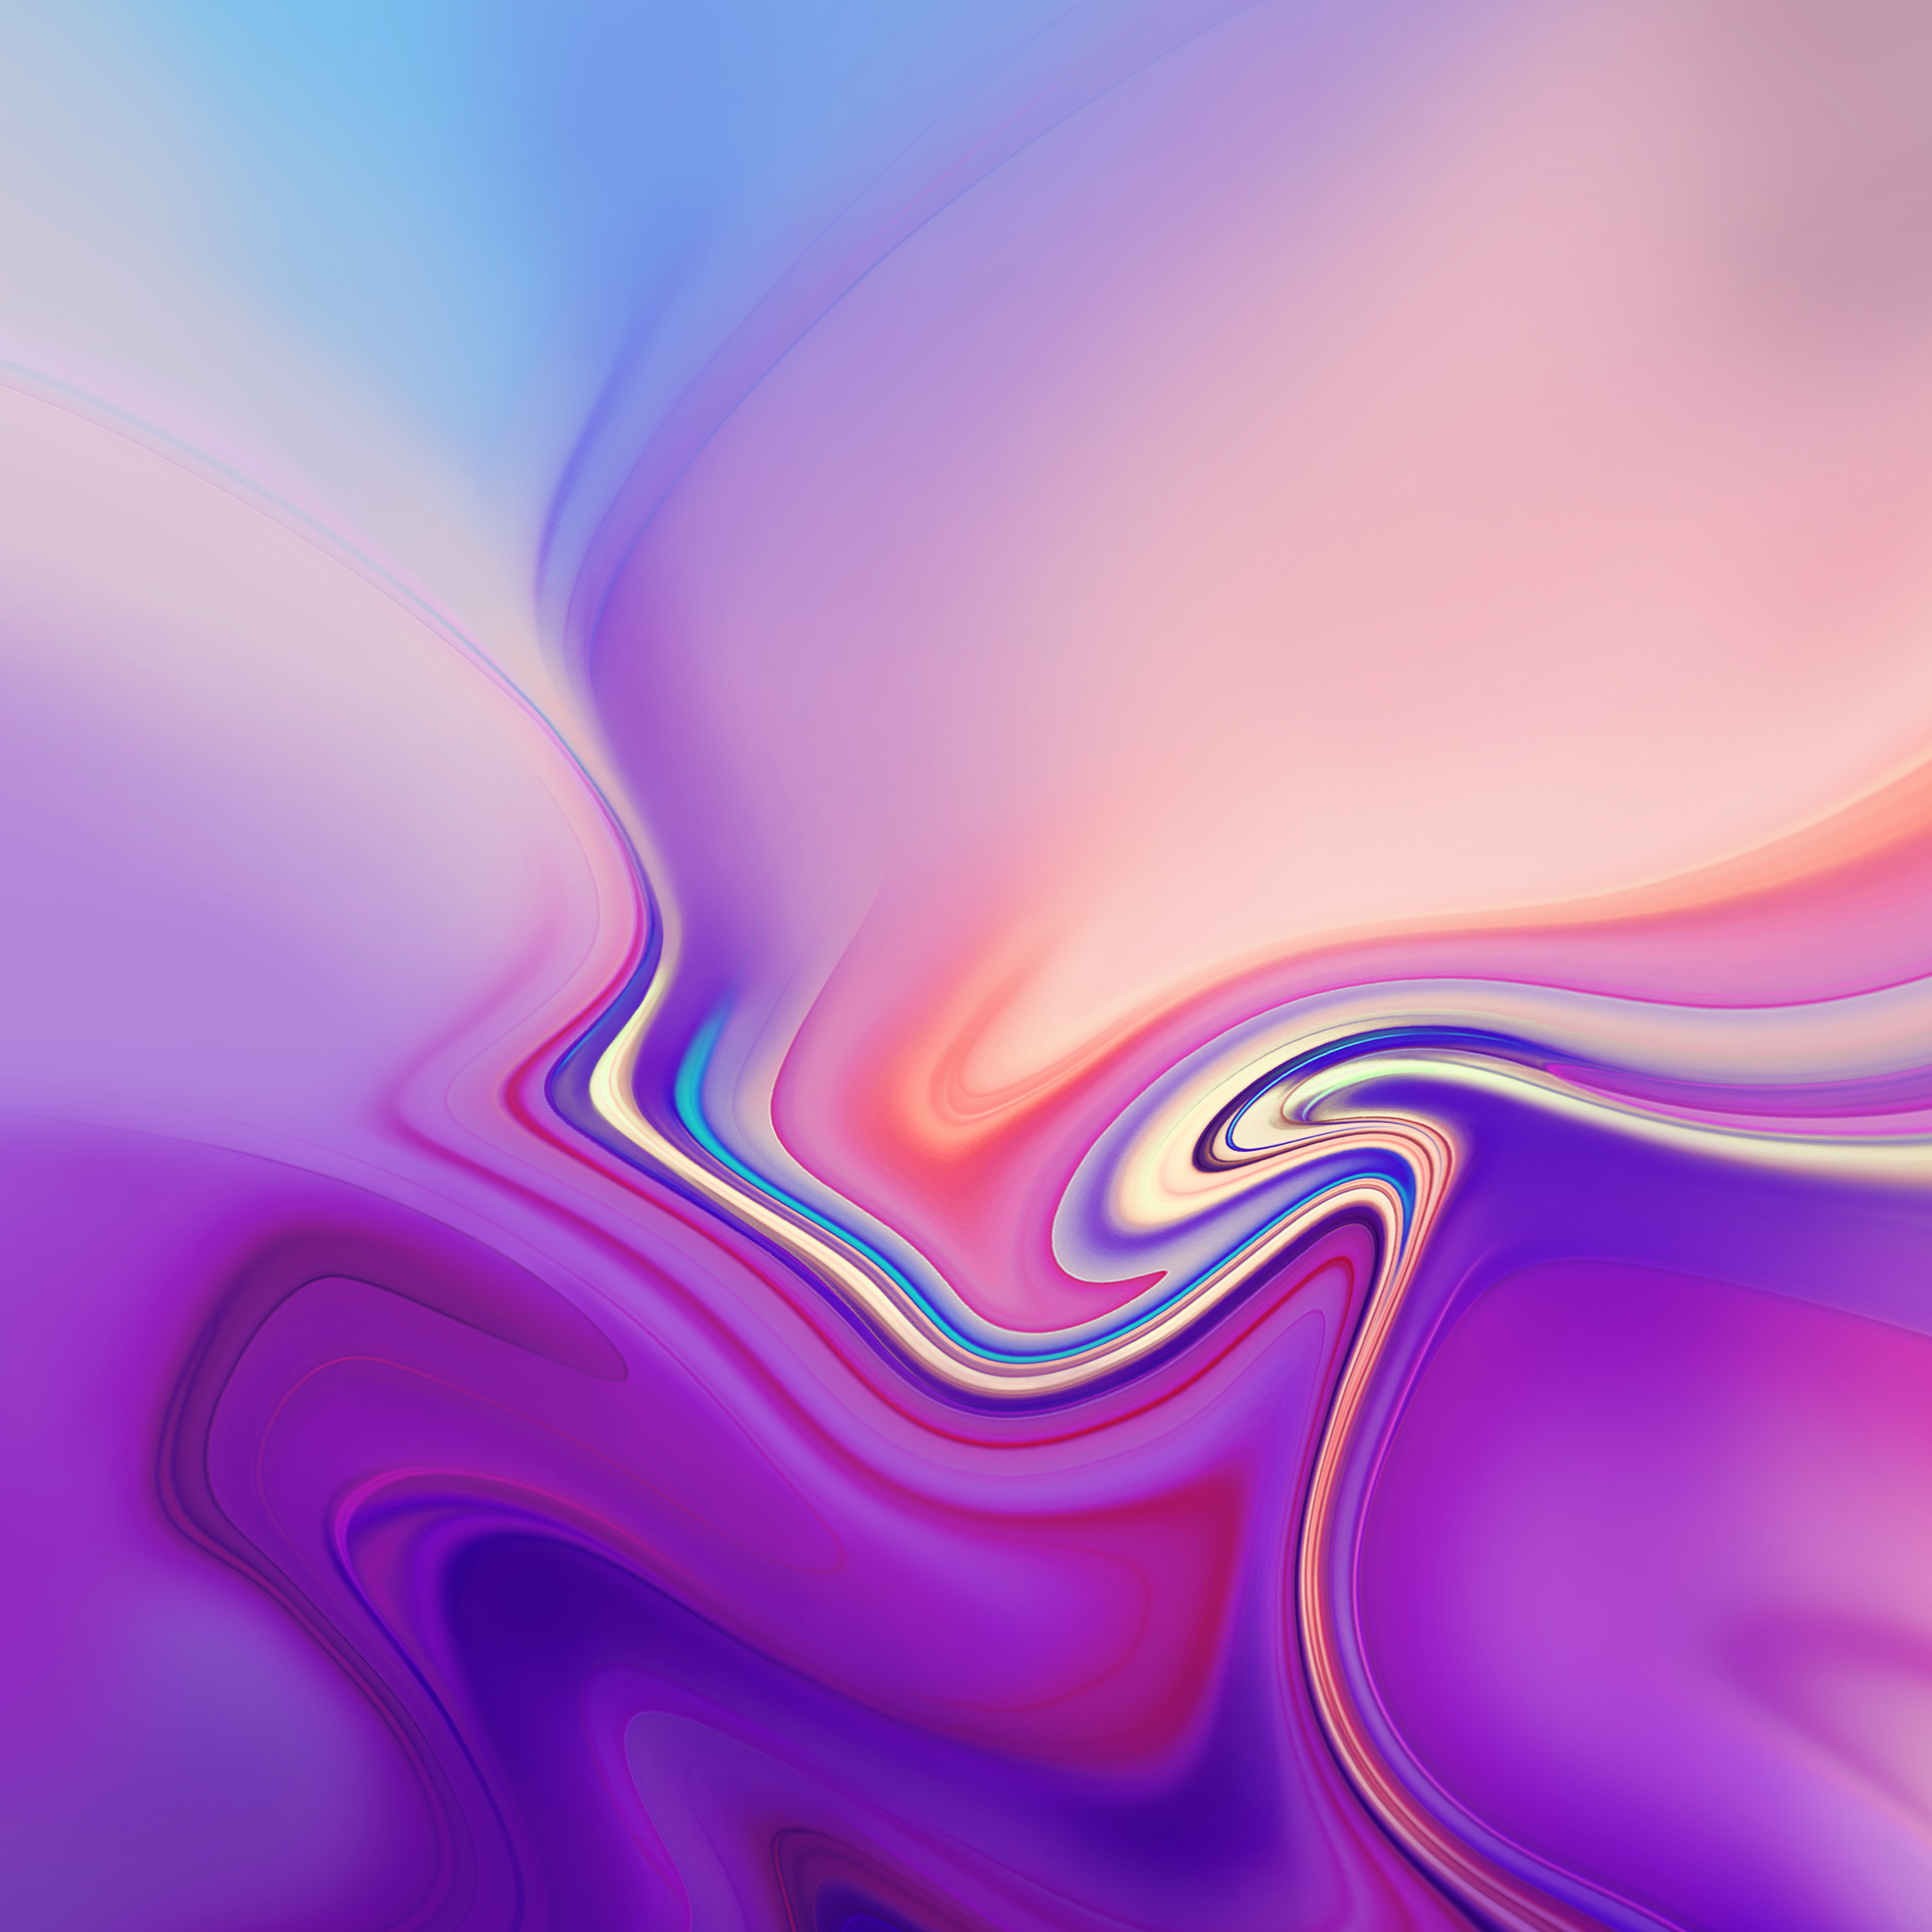 Grab the official Galaxy Tab S4 wallpapers here!